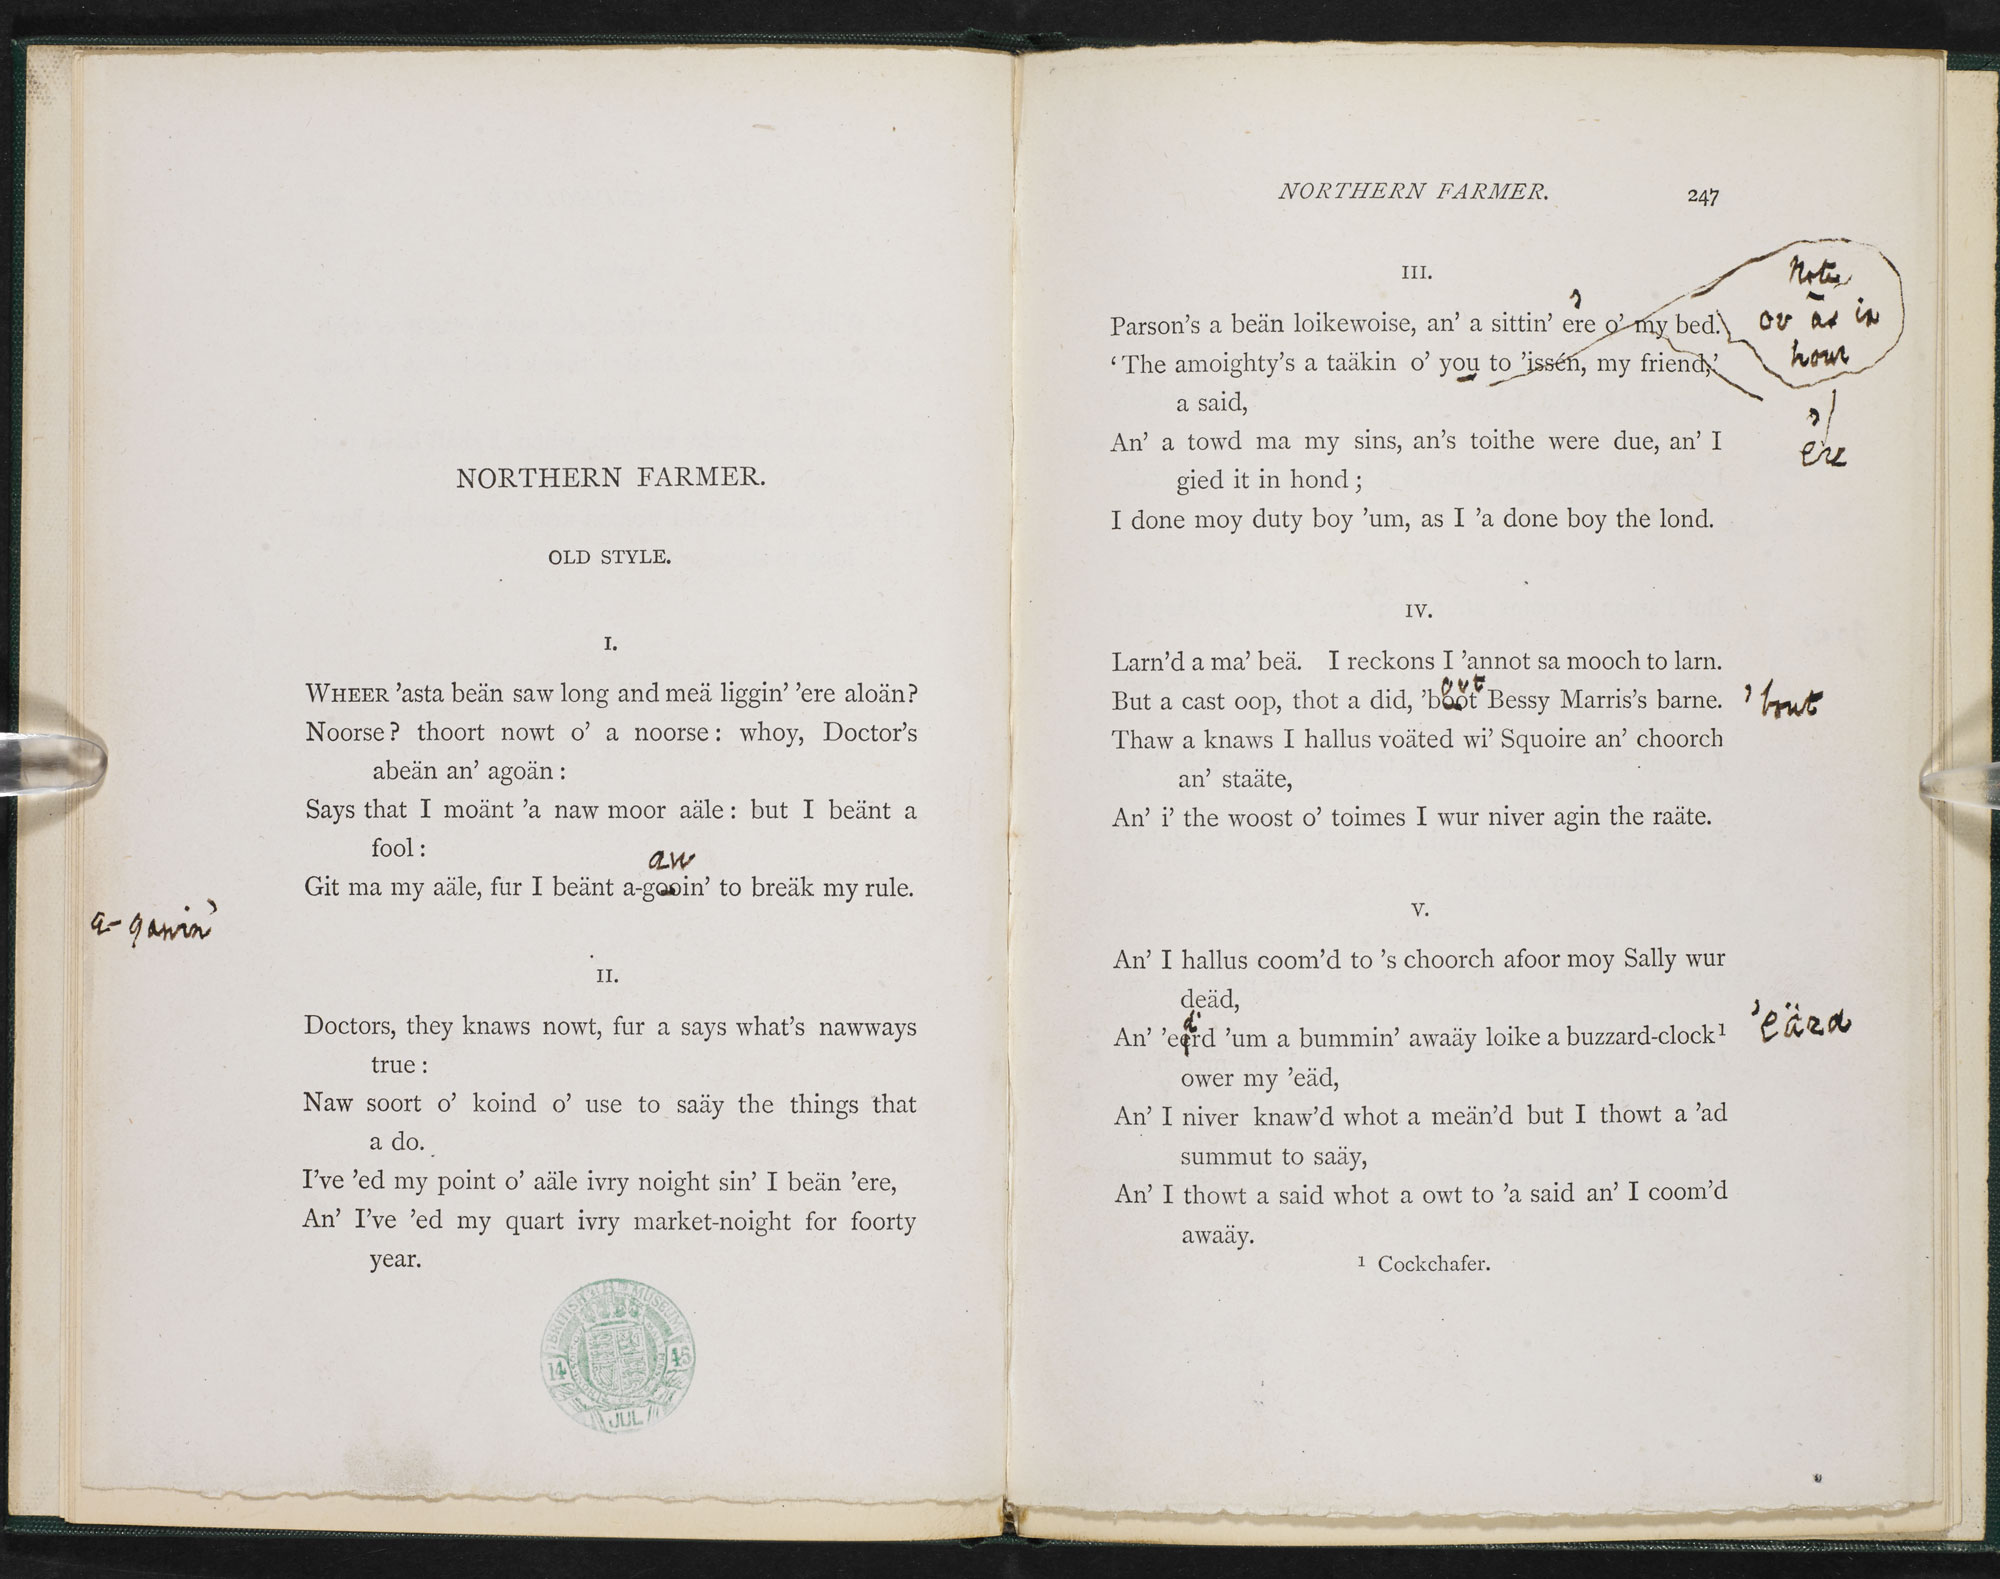 Alfred Lord Tennyson's 'The Northern Farmer' with manuscript revisions